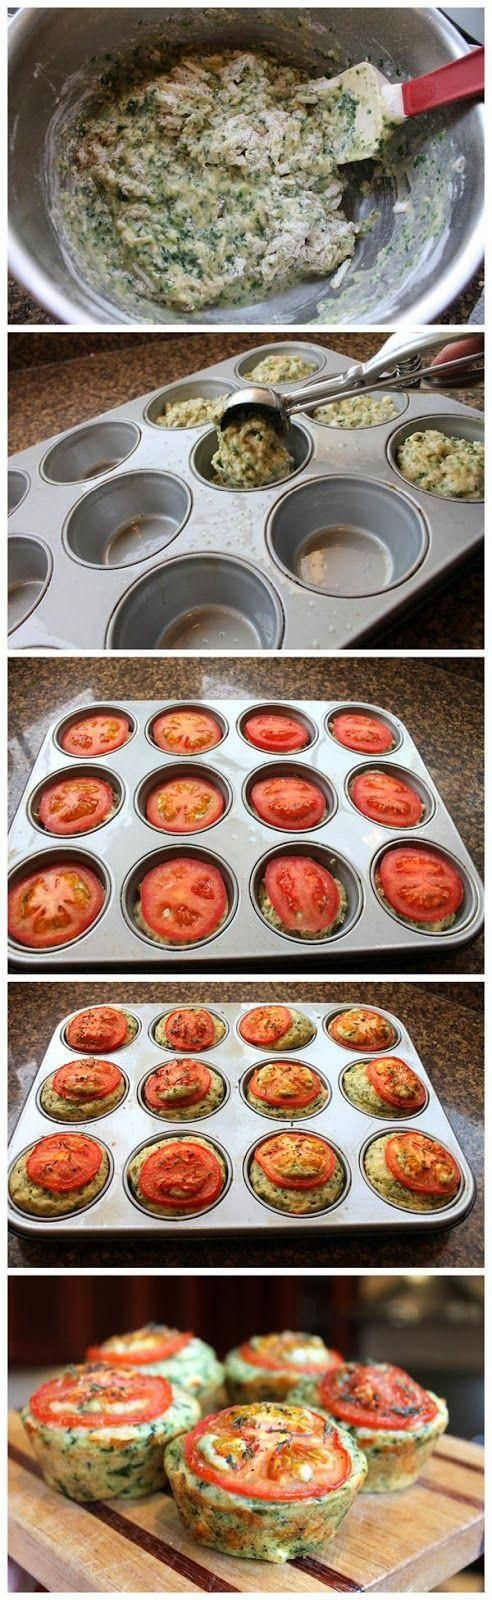 Looks like a good use for those summer tomatoes from the garden. Cheesy Spinach Muffins - Joybx